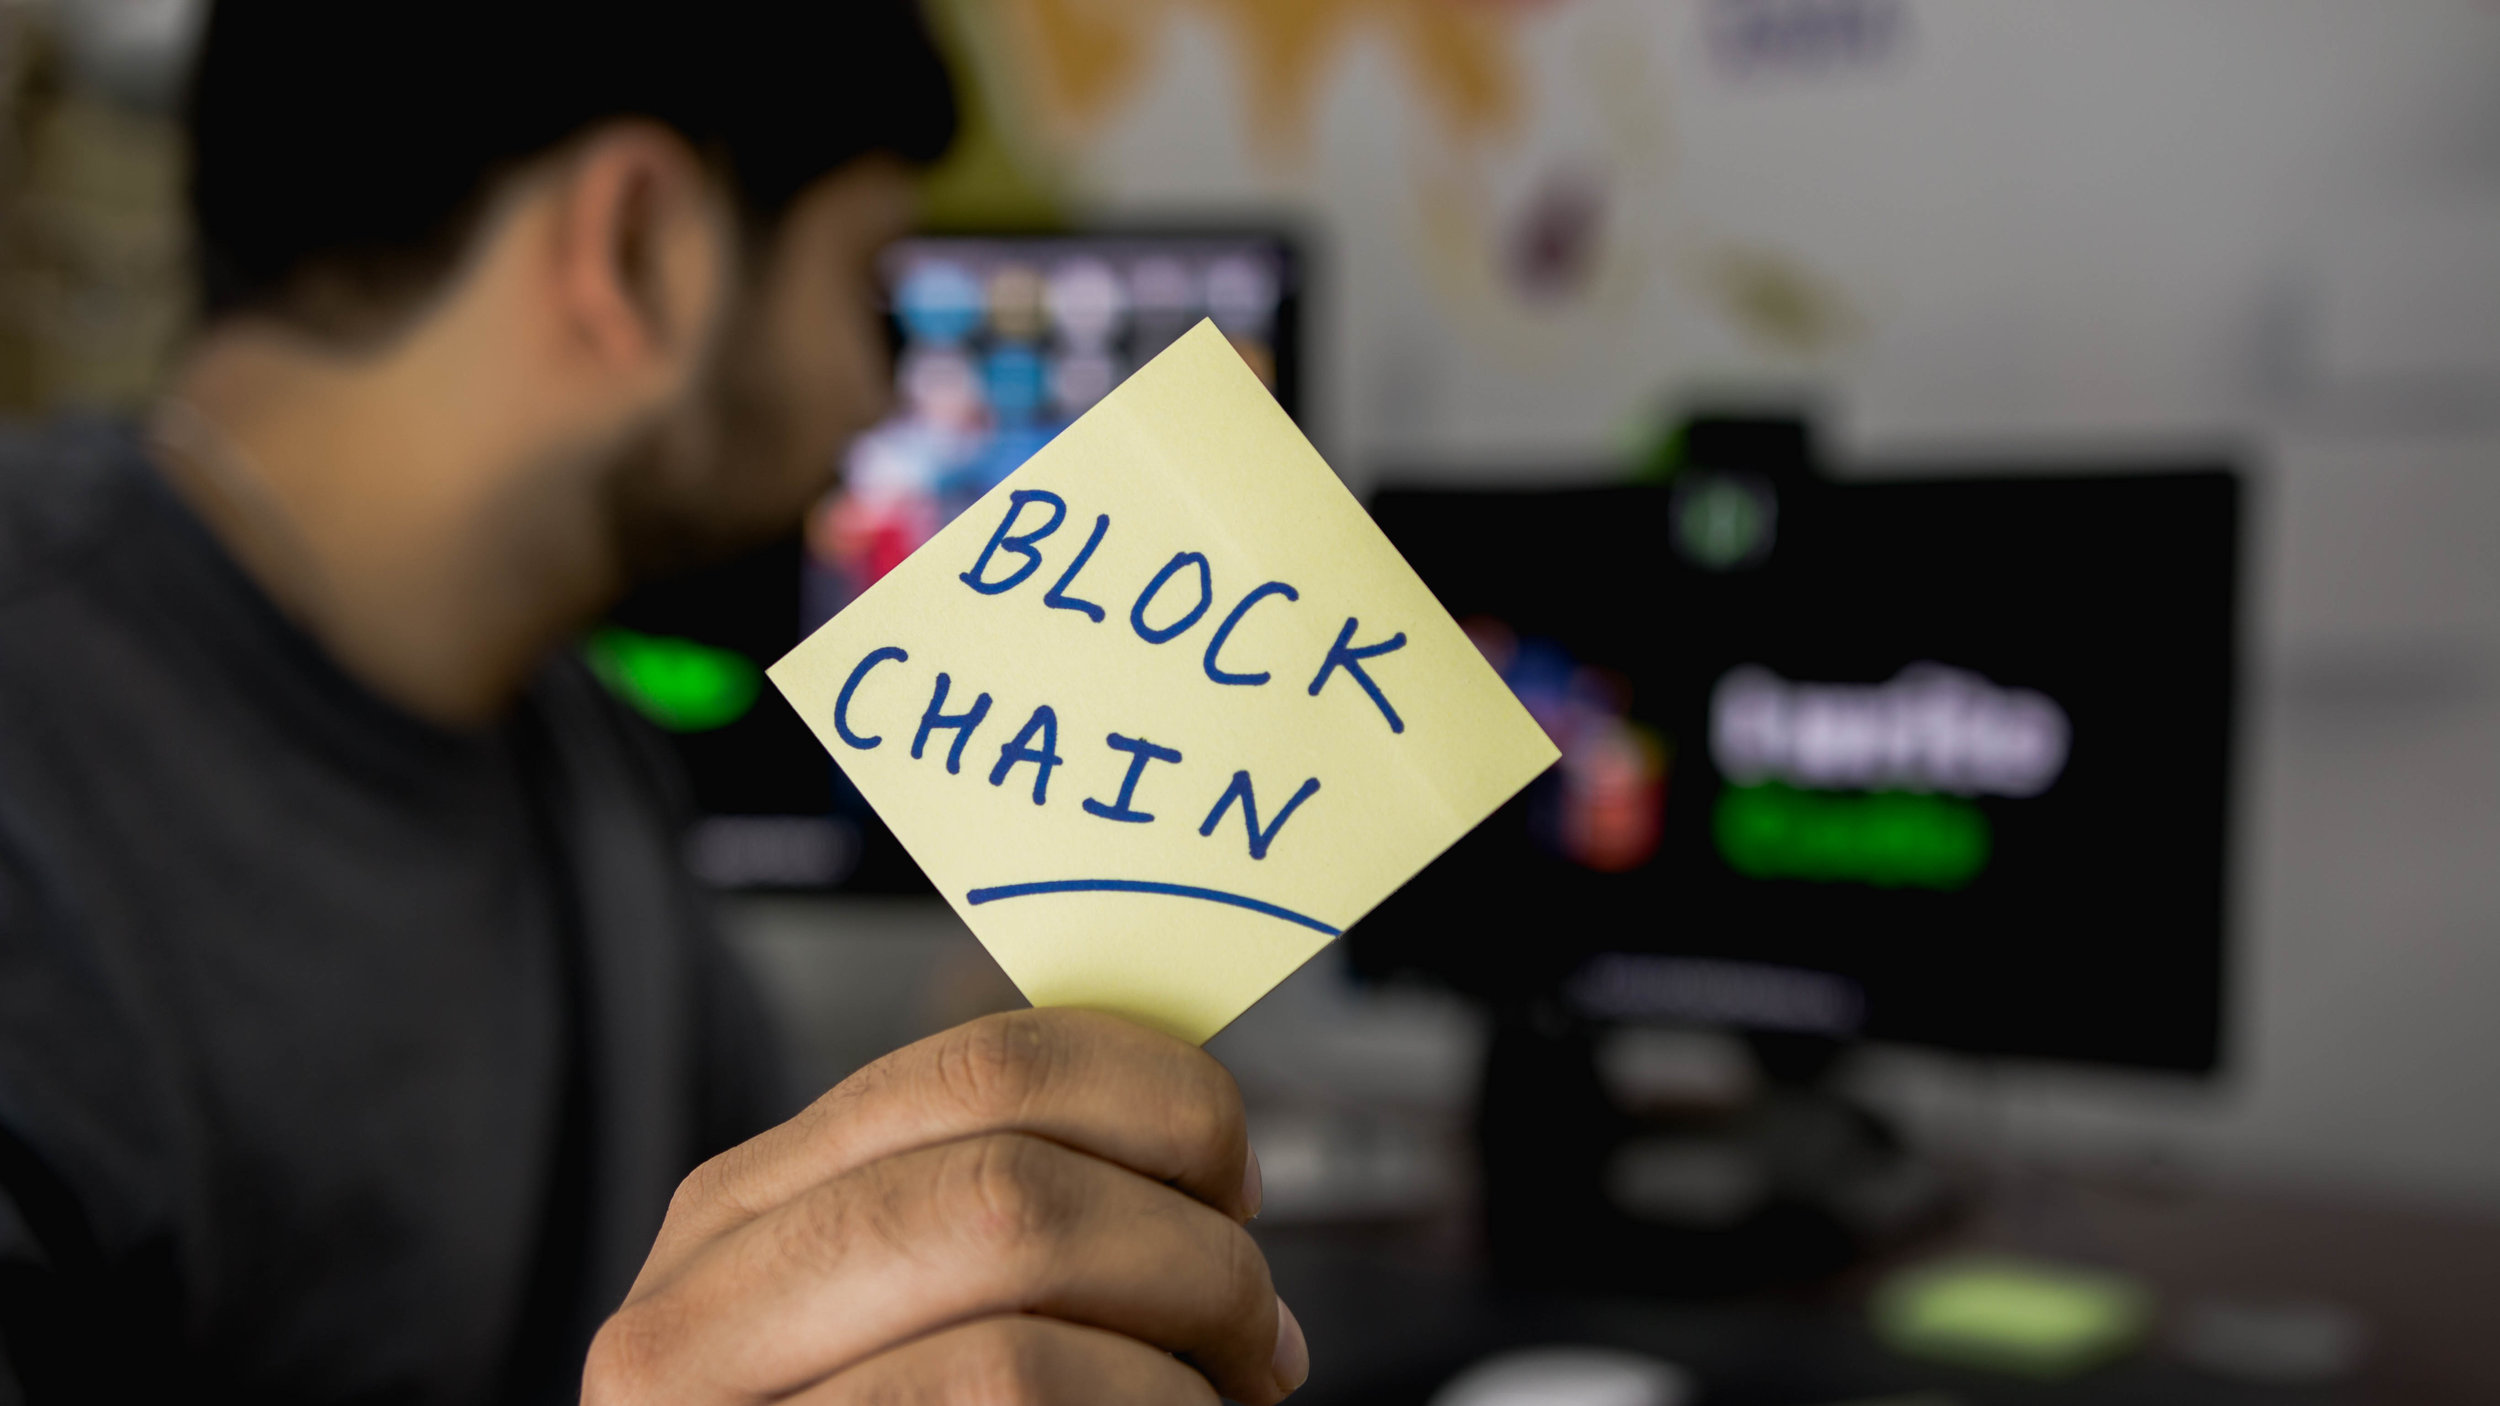 What is blockchain? - We take a quick look at what blockchain technology is exactly, and the benefits of having a decentralised system of keeping secure records.